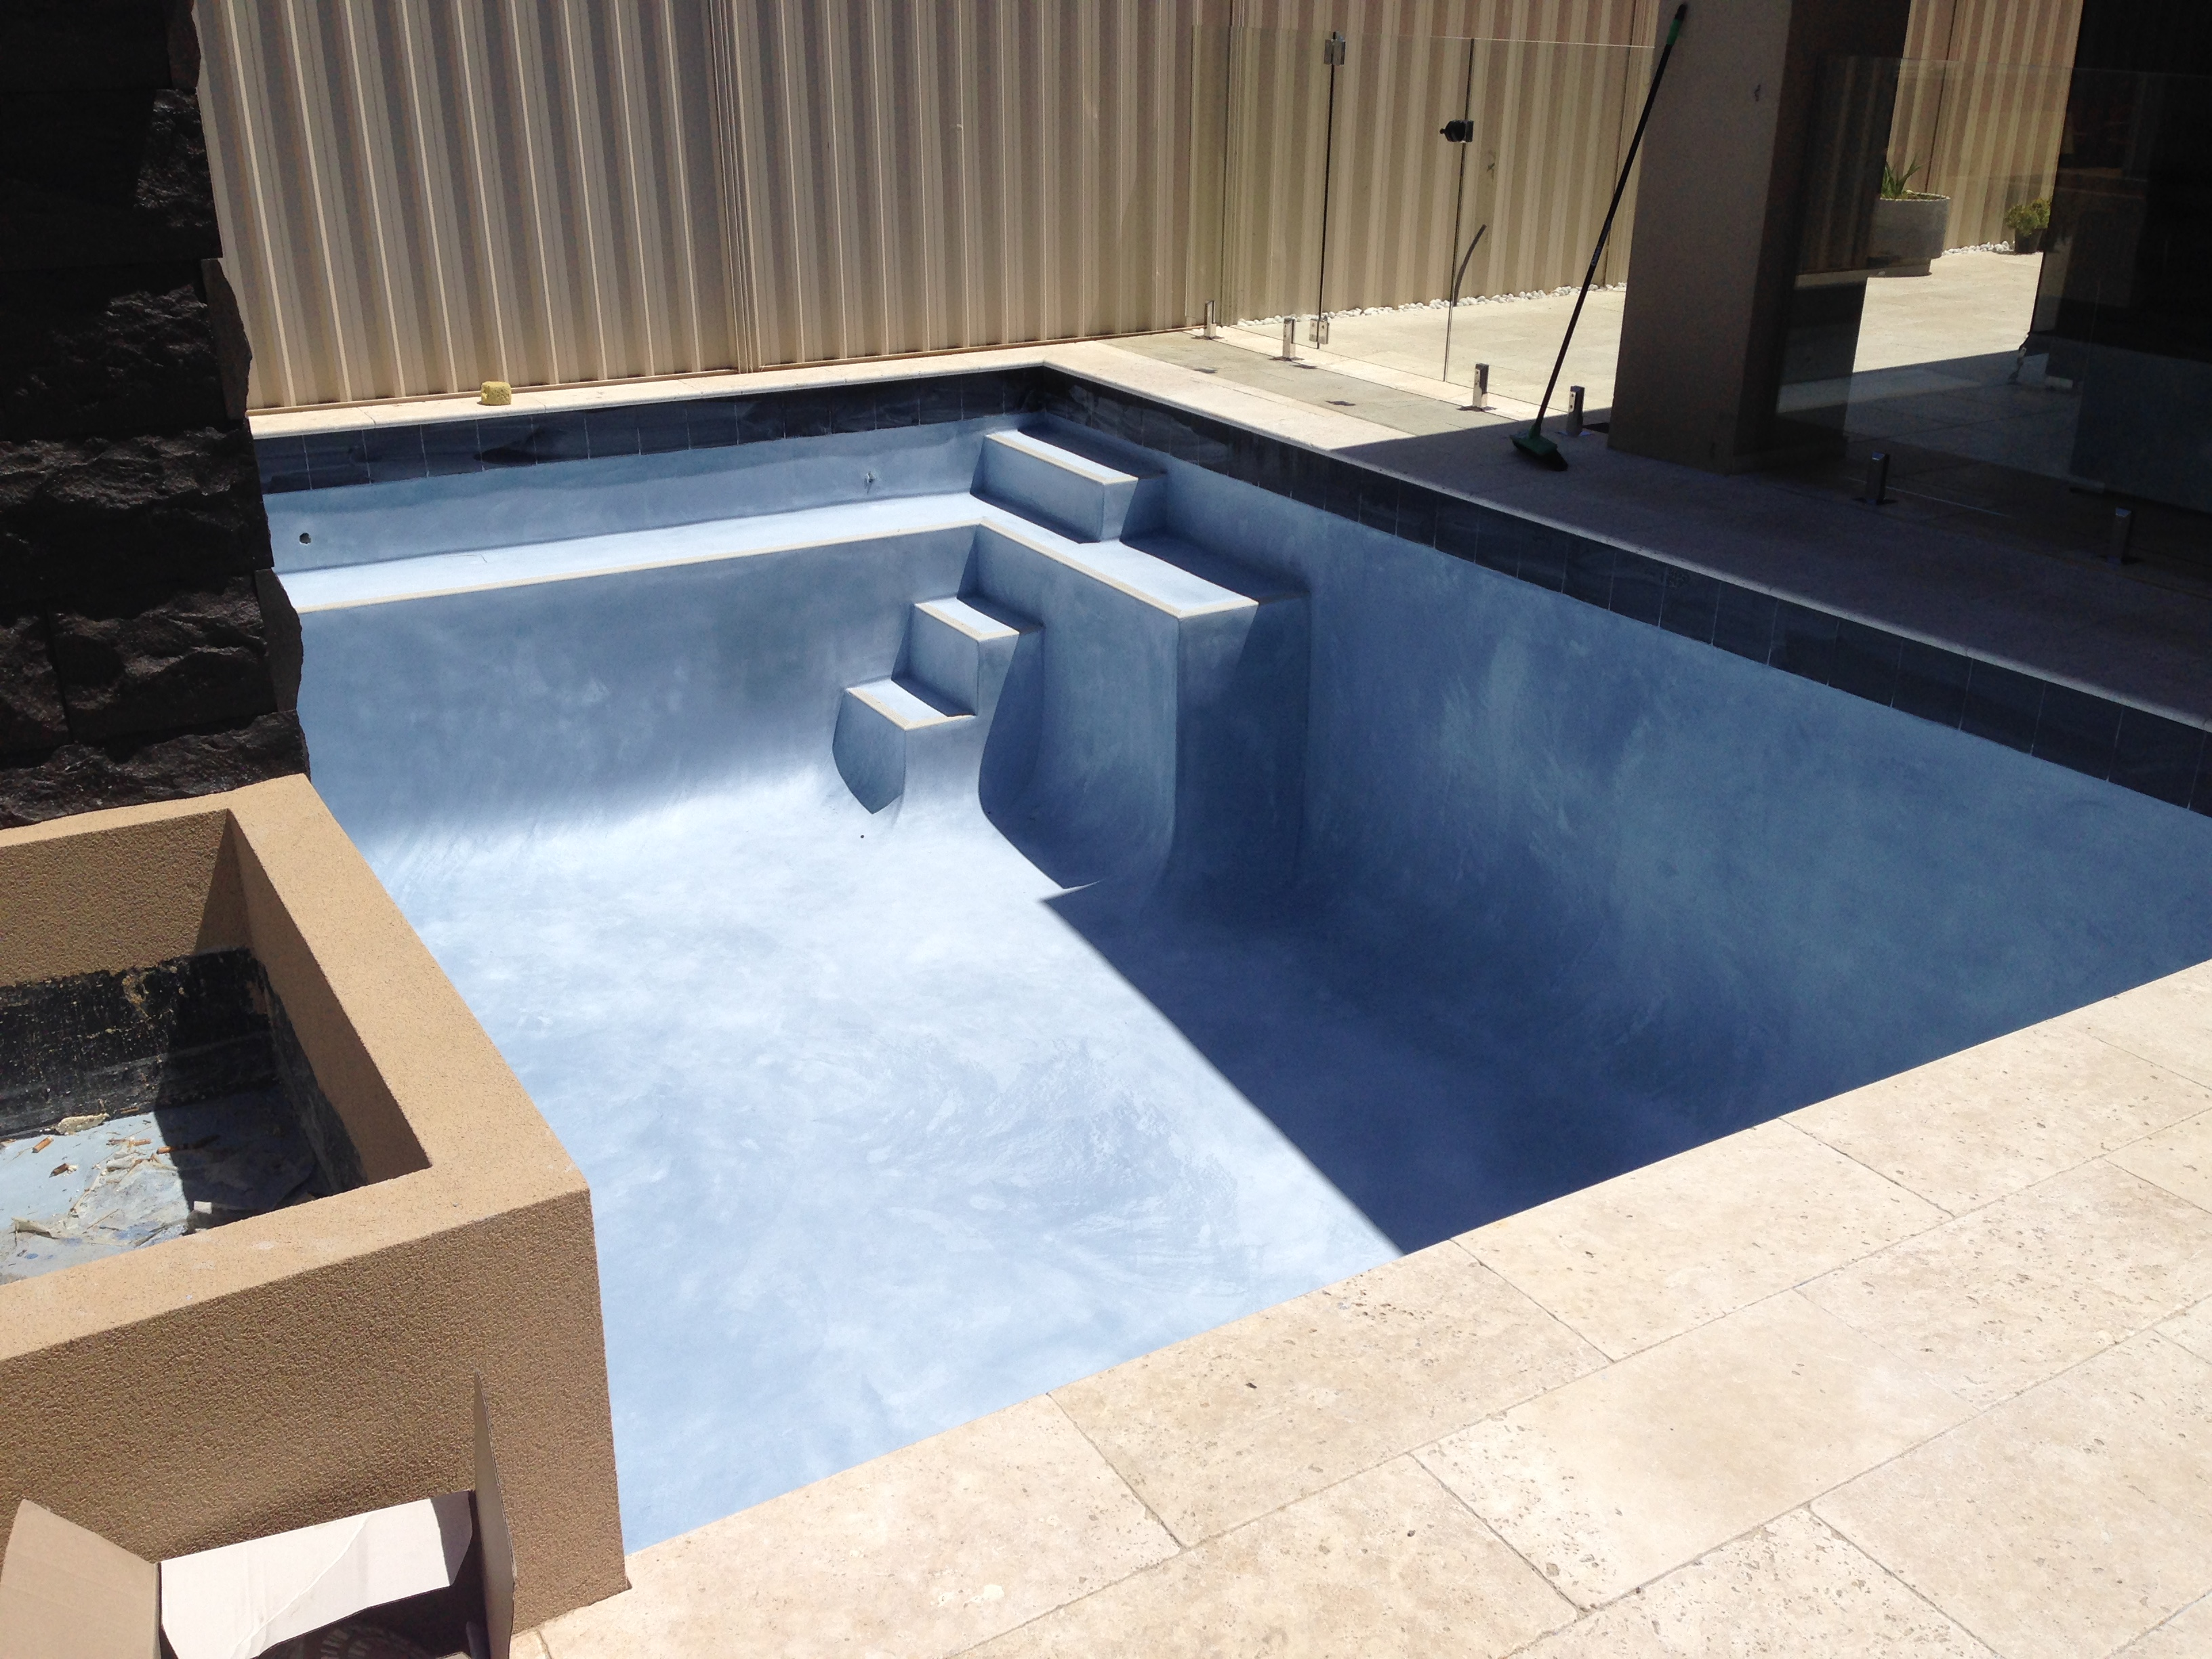 Concrete swimming pool interiors pools by design for Concrete swimming pool